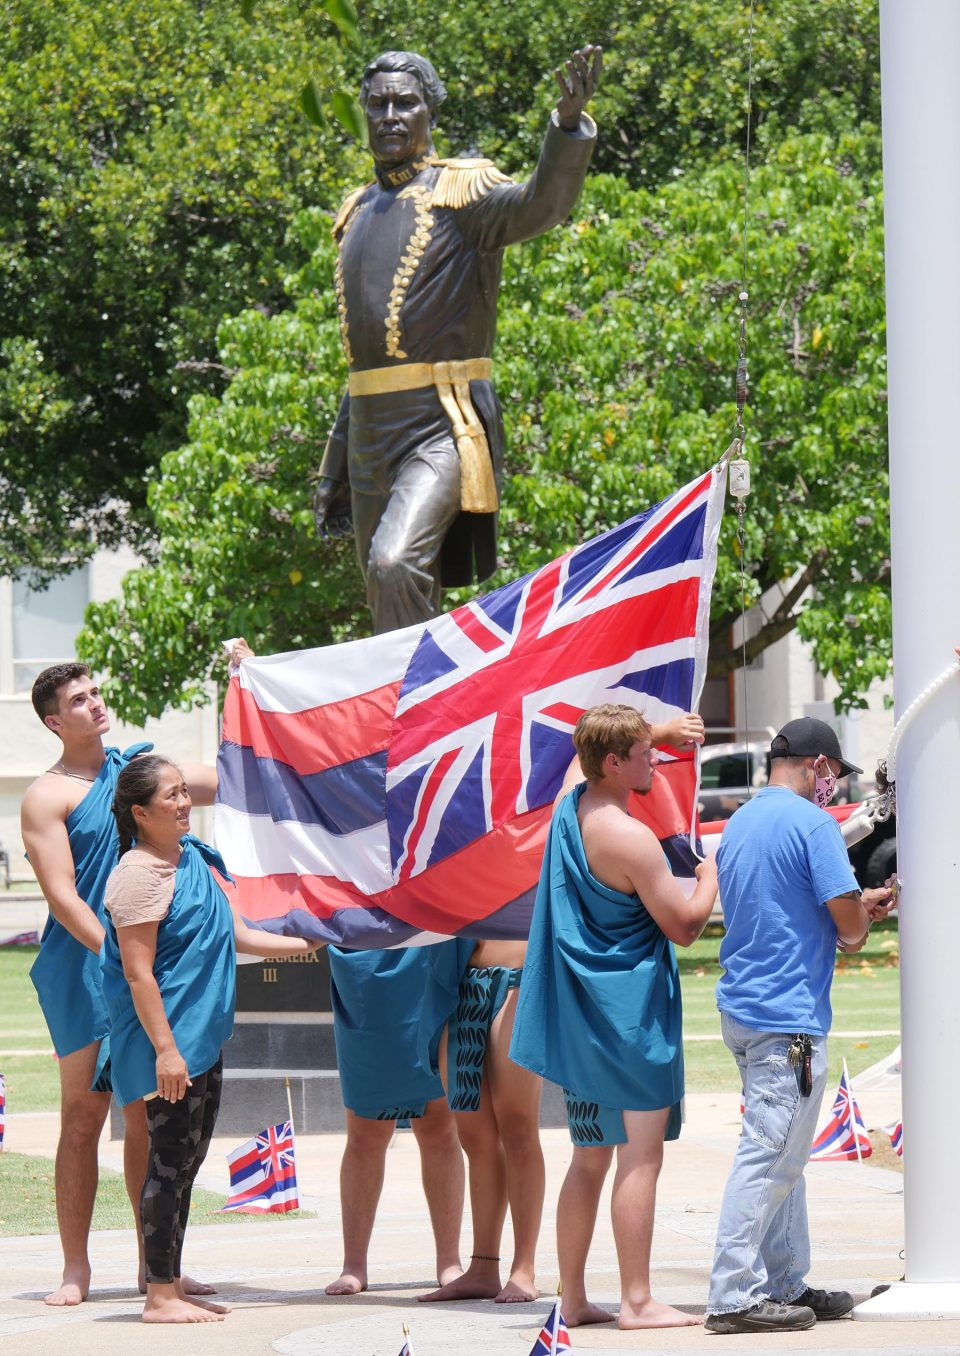 """Hawaiian flag being raised at Thomas Square Park in Honolulu on July 31, 2021. At the start of the """"Lā Hoʻihoʻi Ea Honolulu"""" also known as Hawaiian Restoration Day. Comemmorating the return of the Hawaiian Kingdom's Sovereignty from Britain 178 years ago. Photo/Ronen Zilberman Civil Beat"""